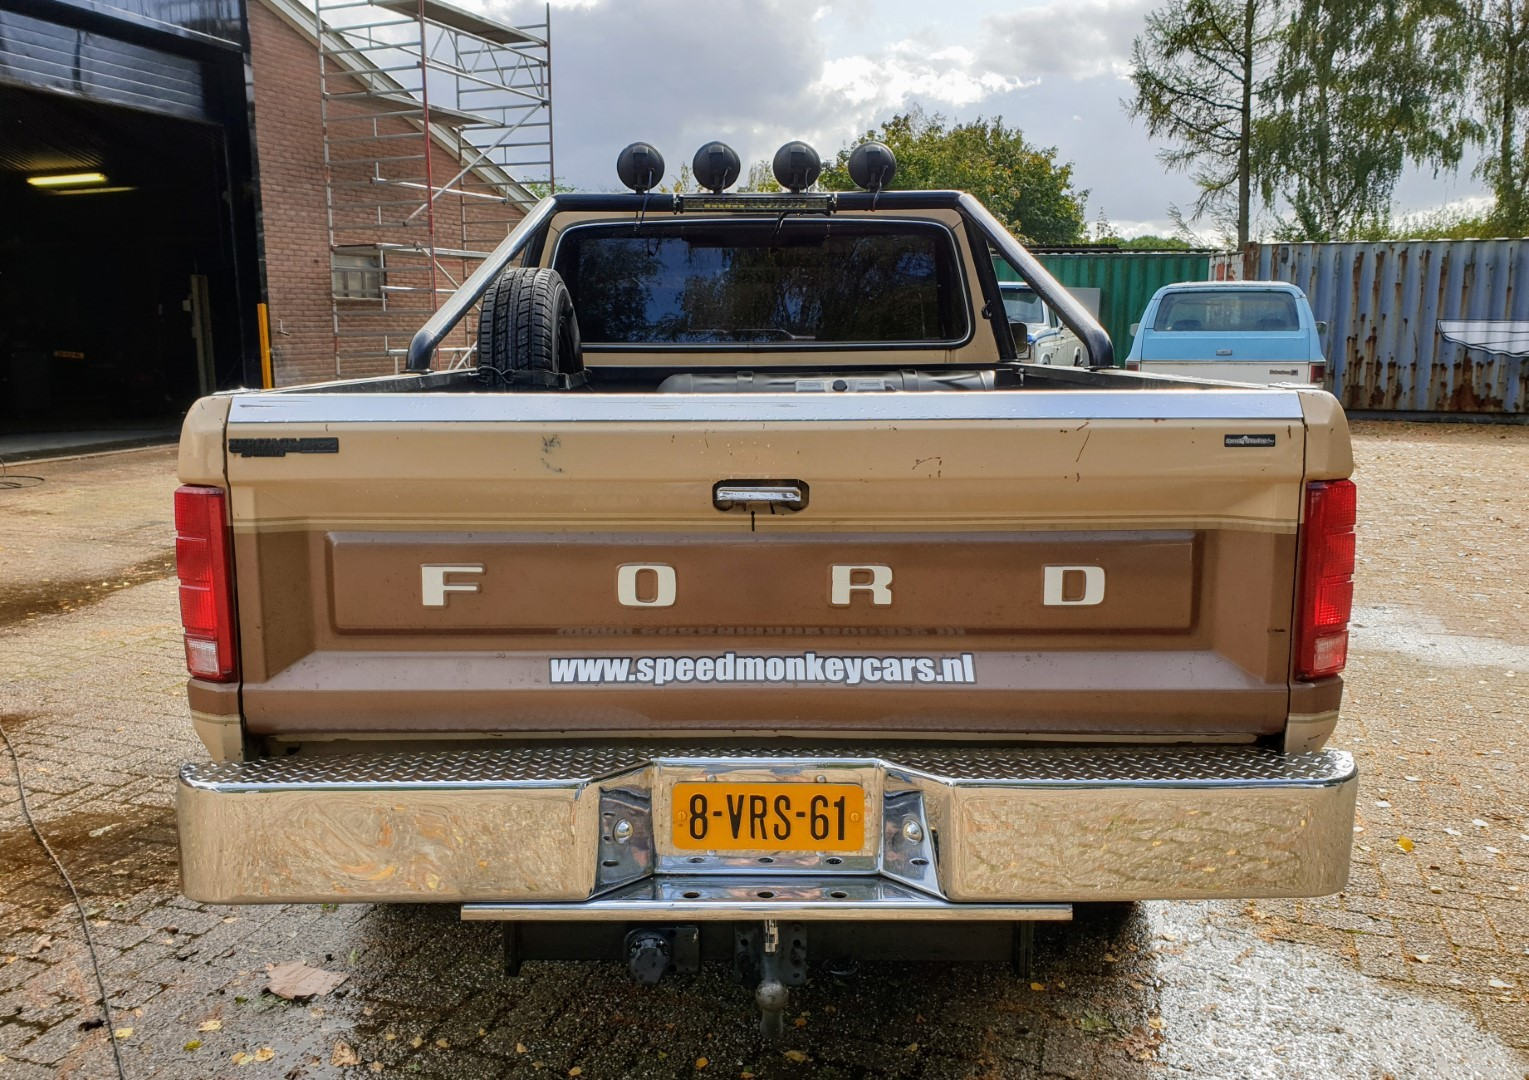 1985-Ford-F250-XL-460ci-Speedmonkeycars-4